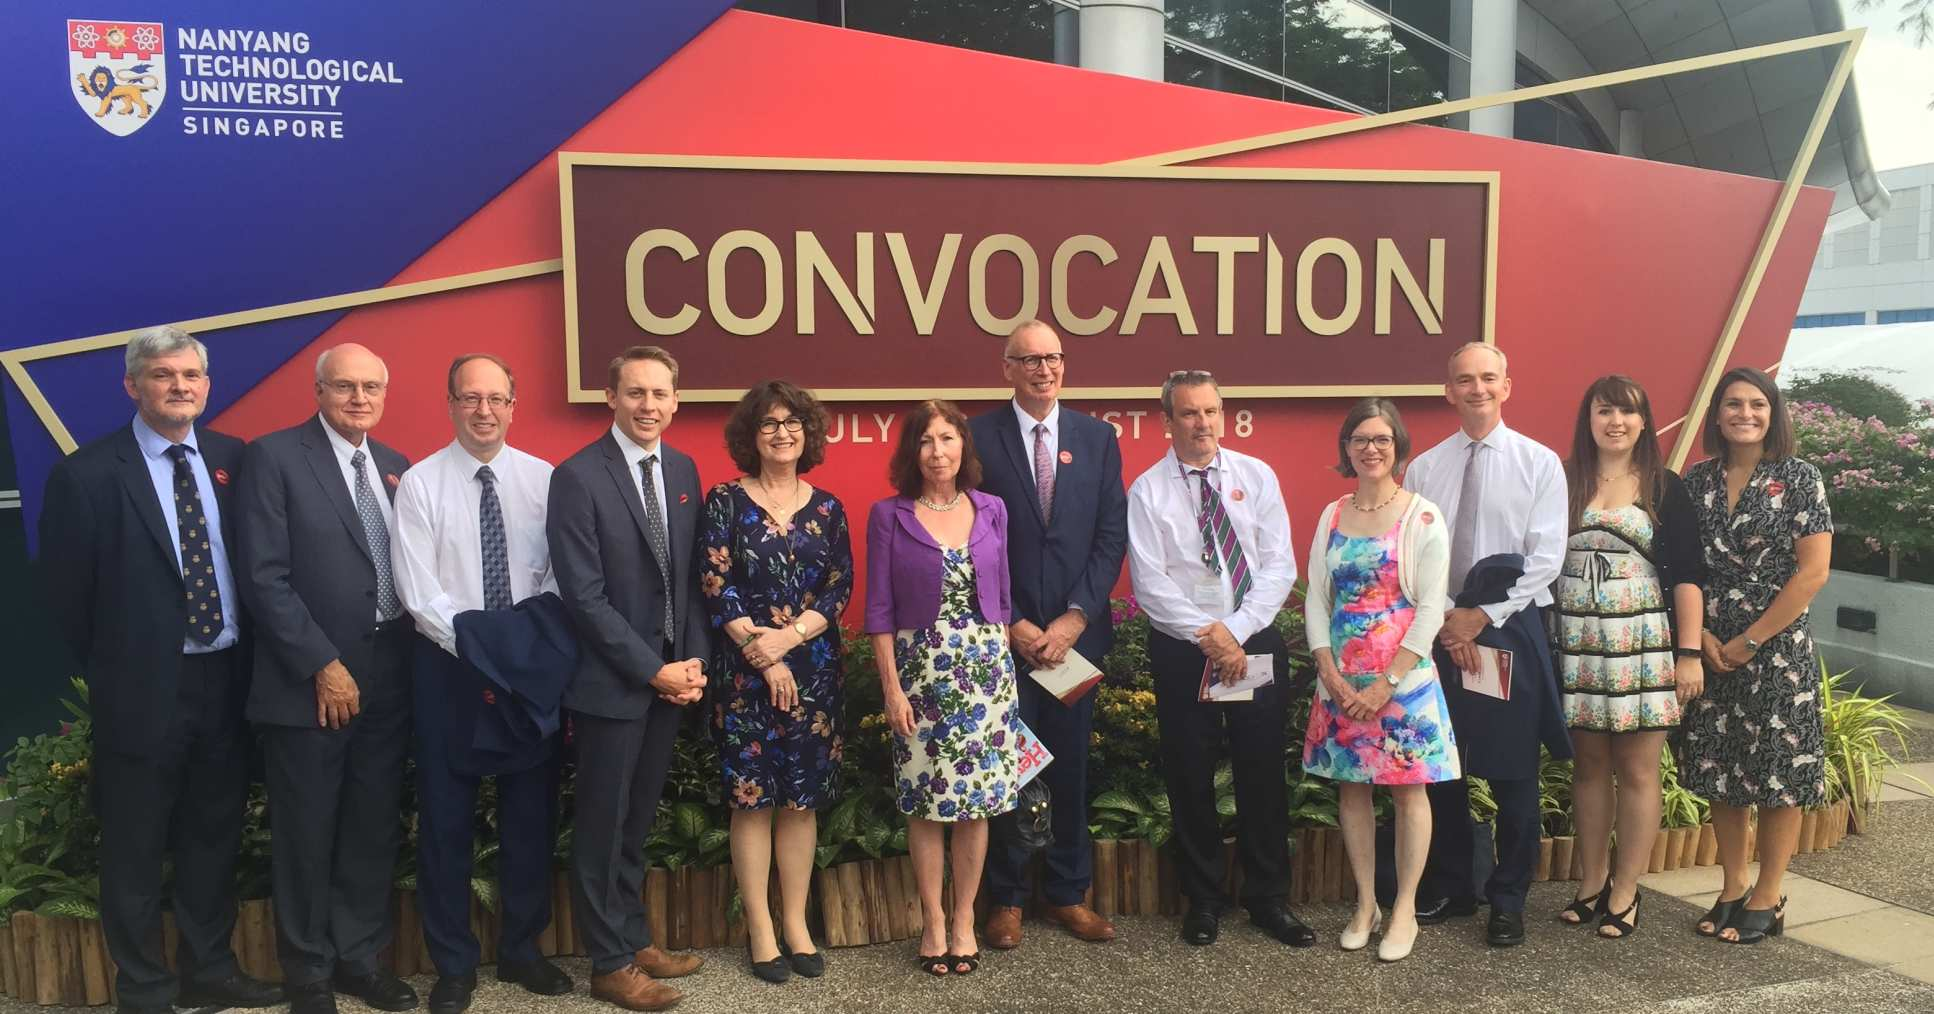 London-based LKCMedicine staff and supporters at the Convocation